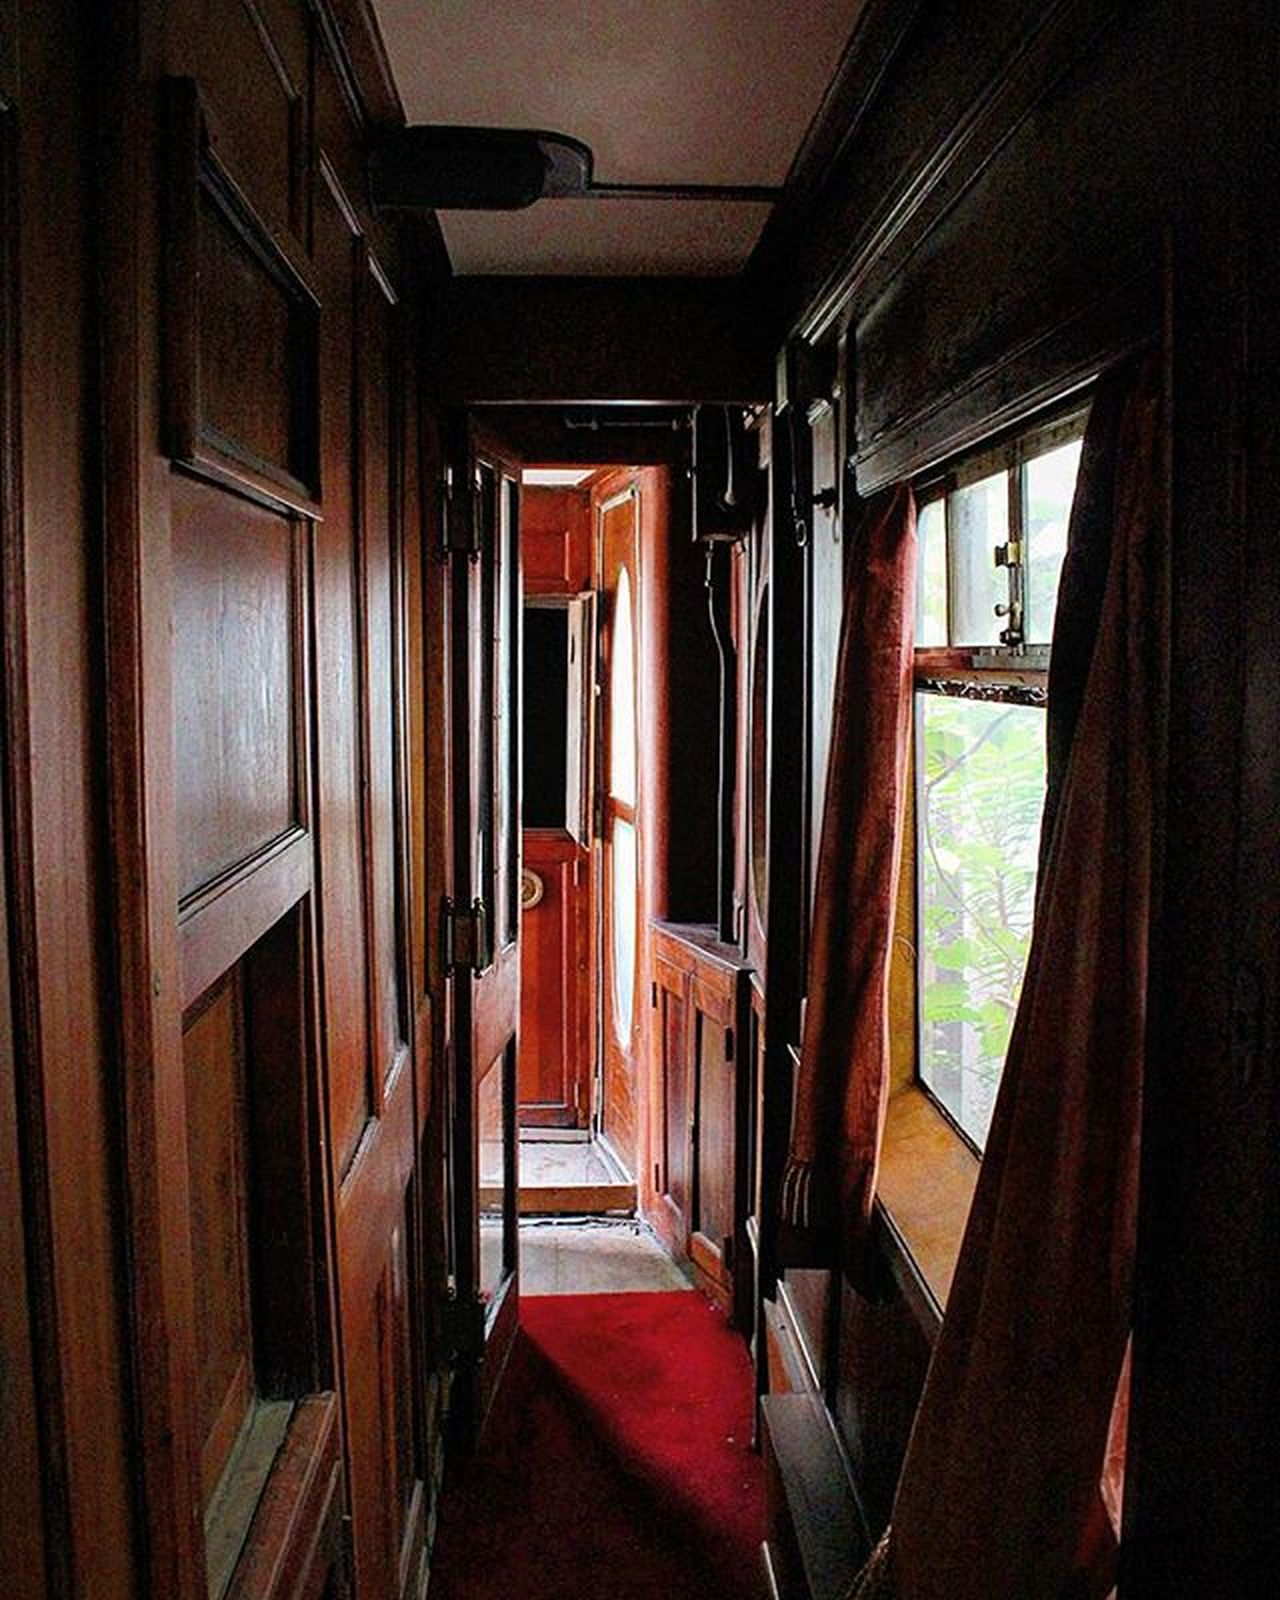 Train Old Renovation Vintage Nostalgia Wooden Coridor Windows Carpet Conpartment Trip Colt English Retro Contacter Beautiful Dreamy Romantic Tickets Vacations Railways_of_our_world Orianexpress Aghathachristie Herculepoirot Station Photography canon700d Thessaloniki Greece